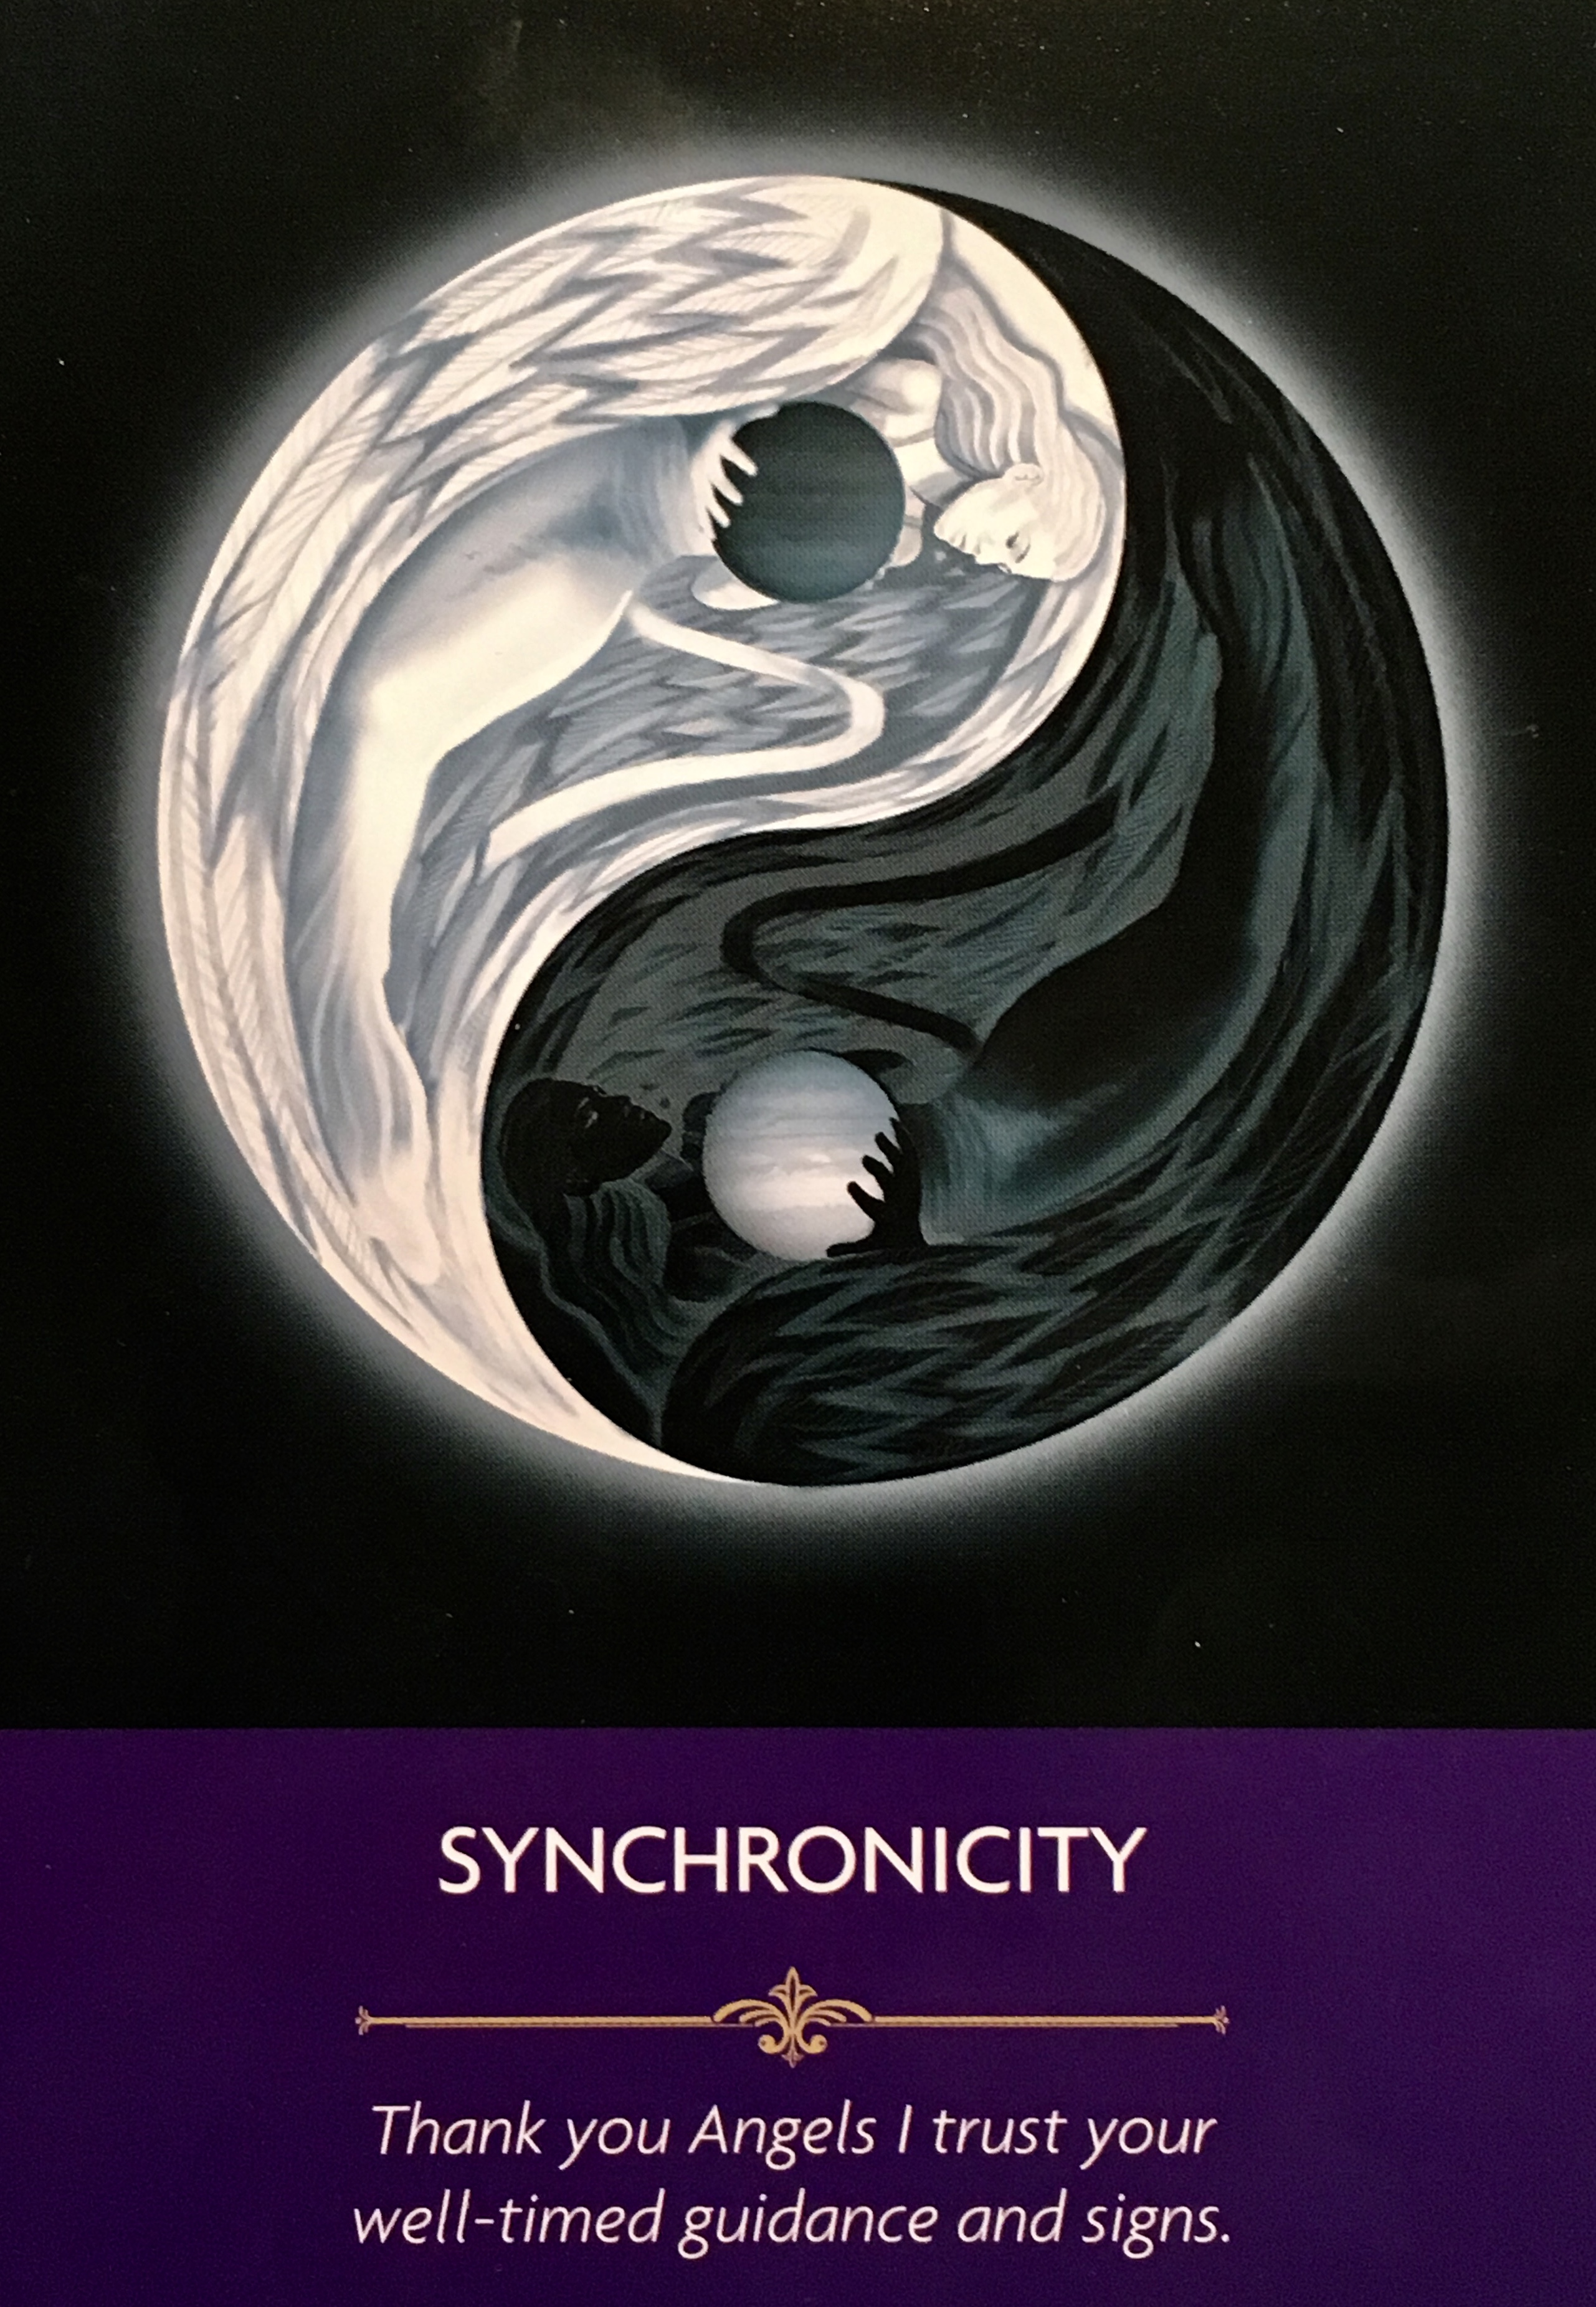 Dr. Carl Jung on Synchronicity